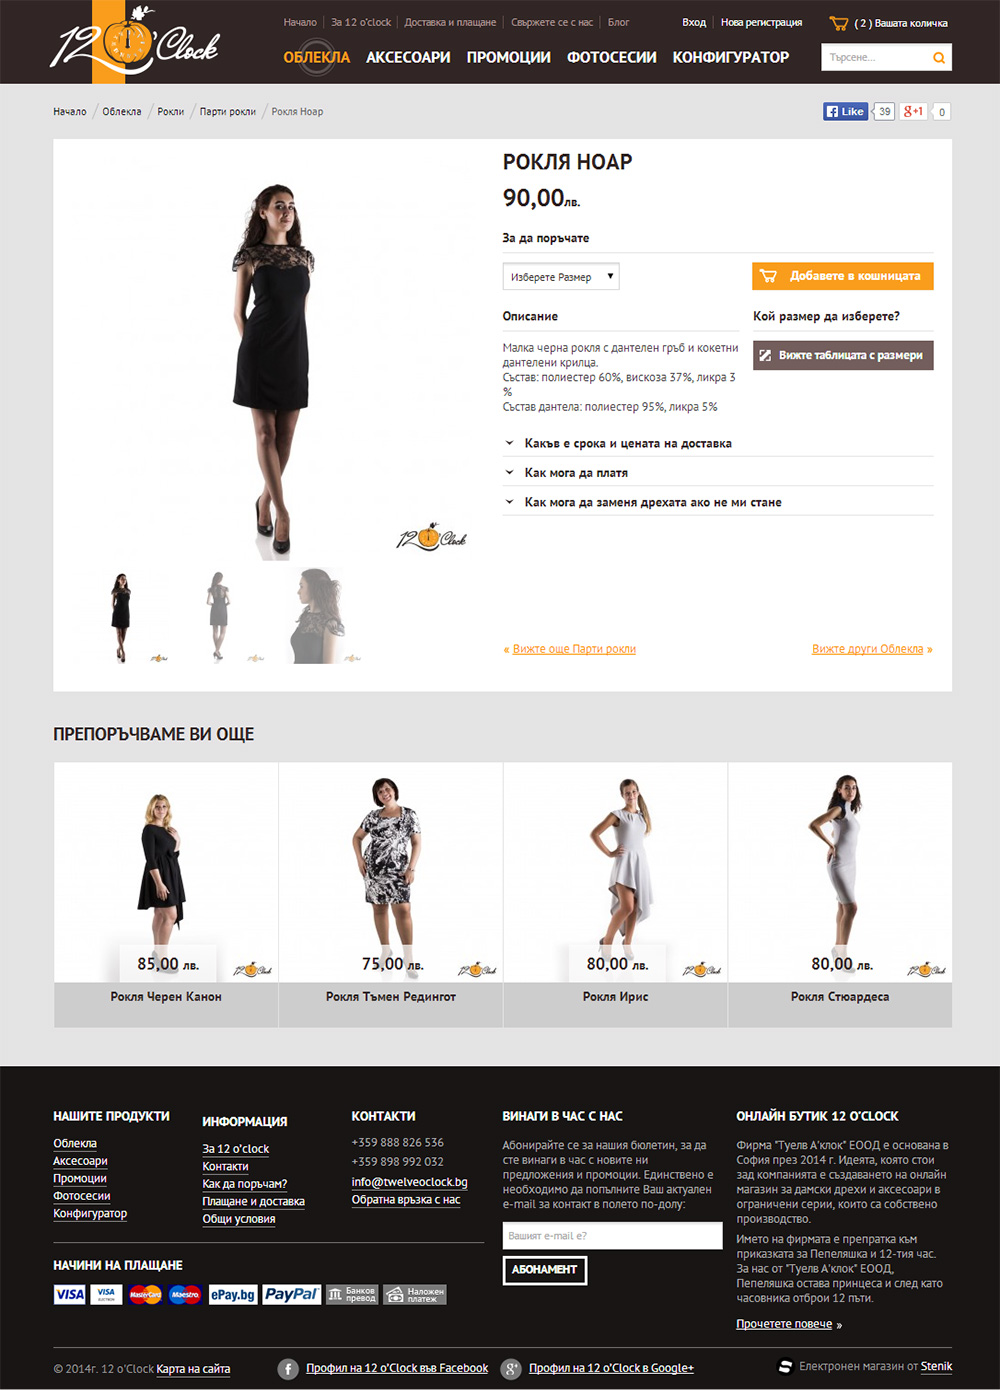 Online store for women fashion 12 o'clock, 12 o'clock - Online Shops, Stenik, Magento